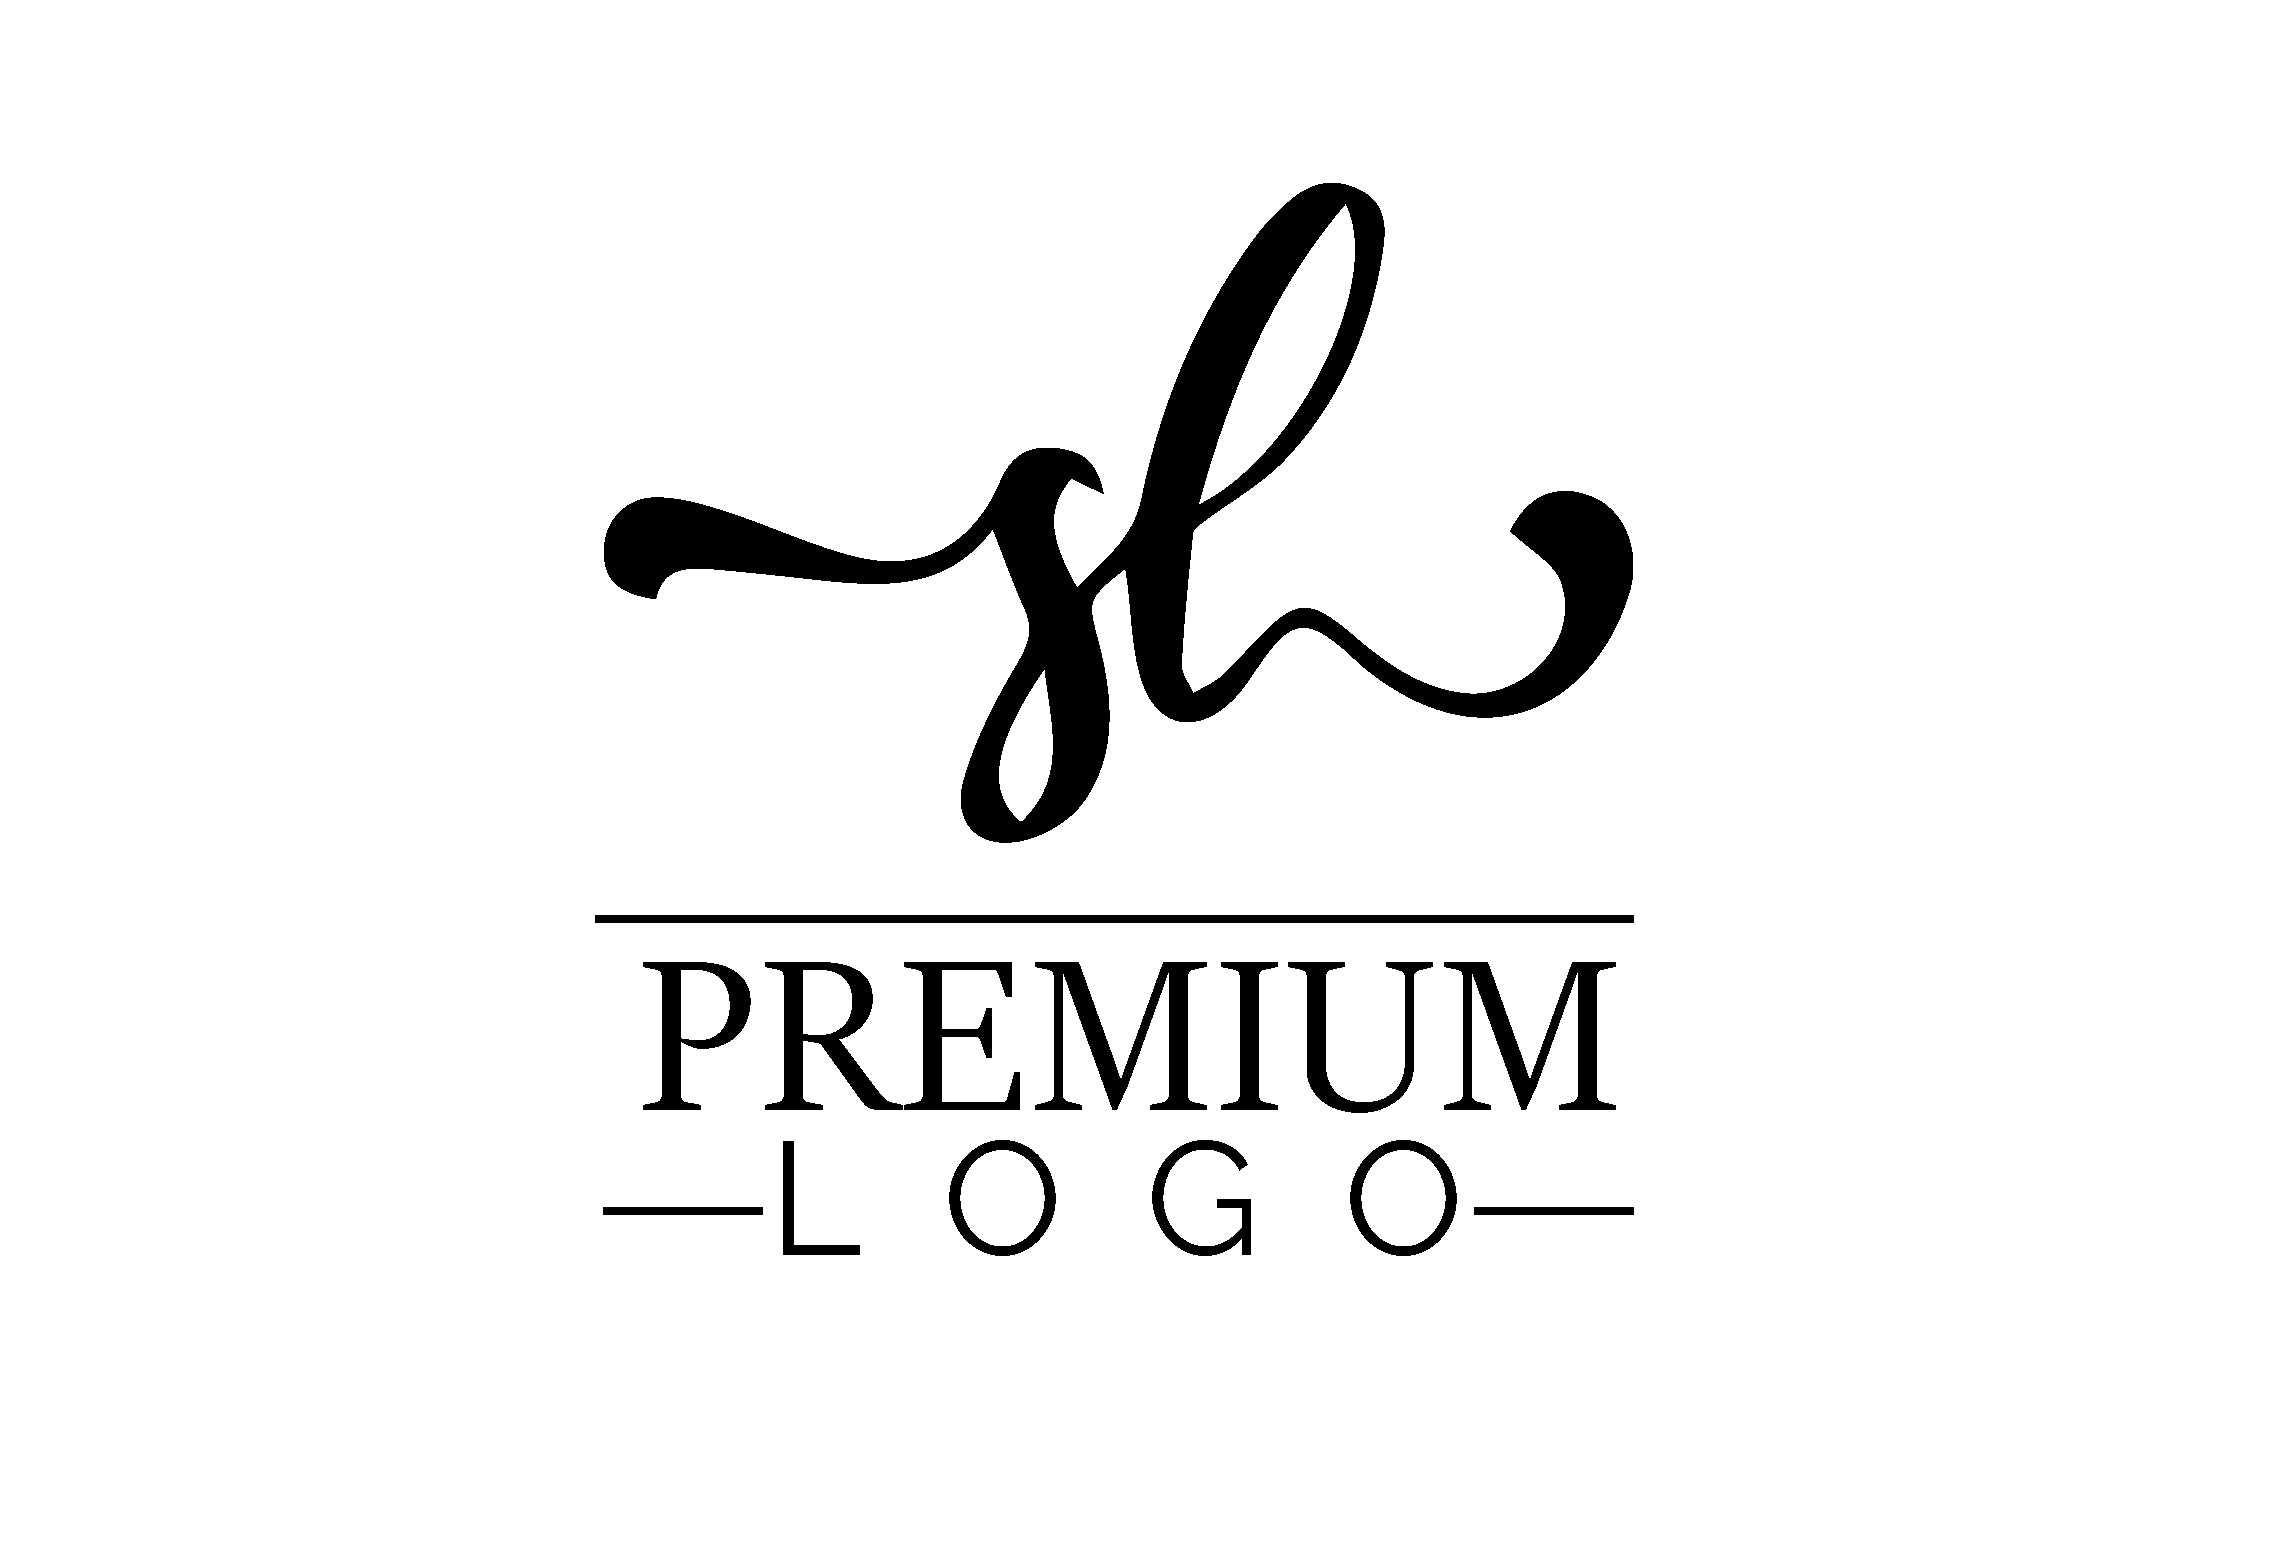 I'll design a premium logo within 24 hours